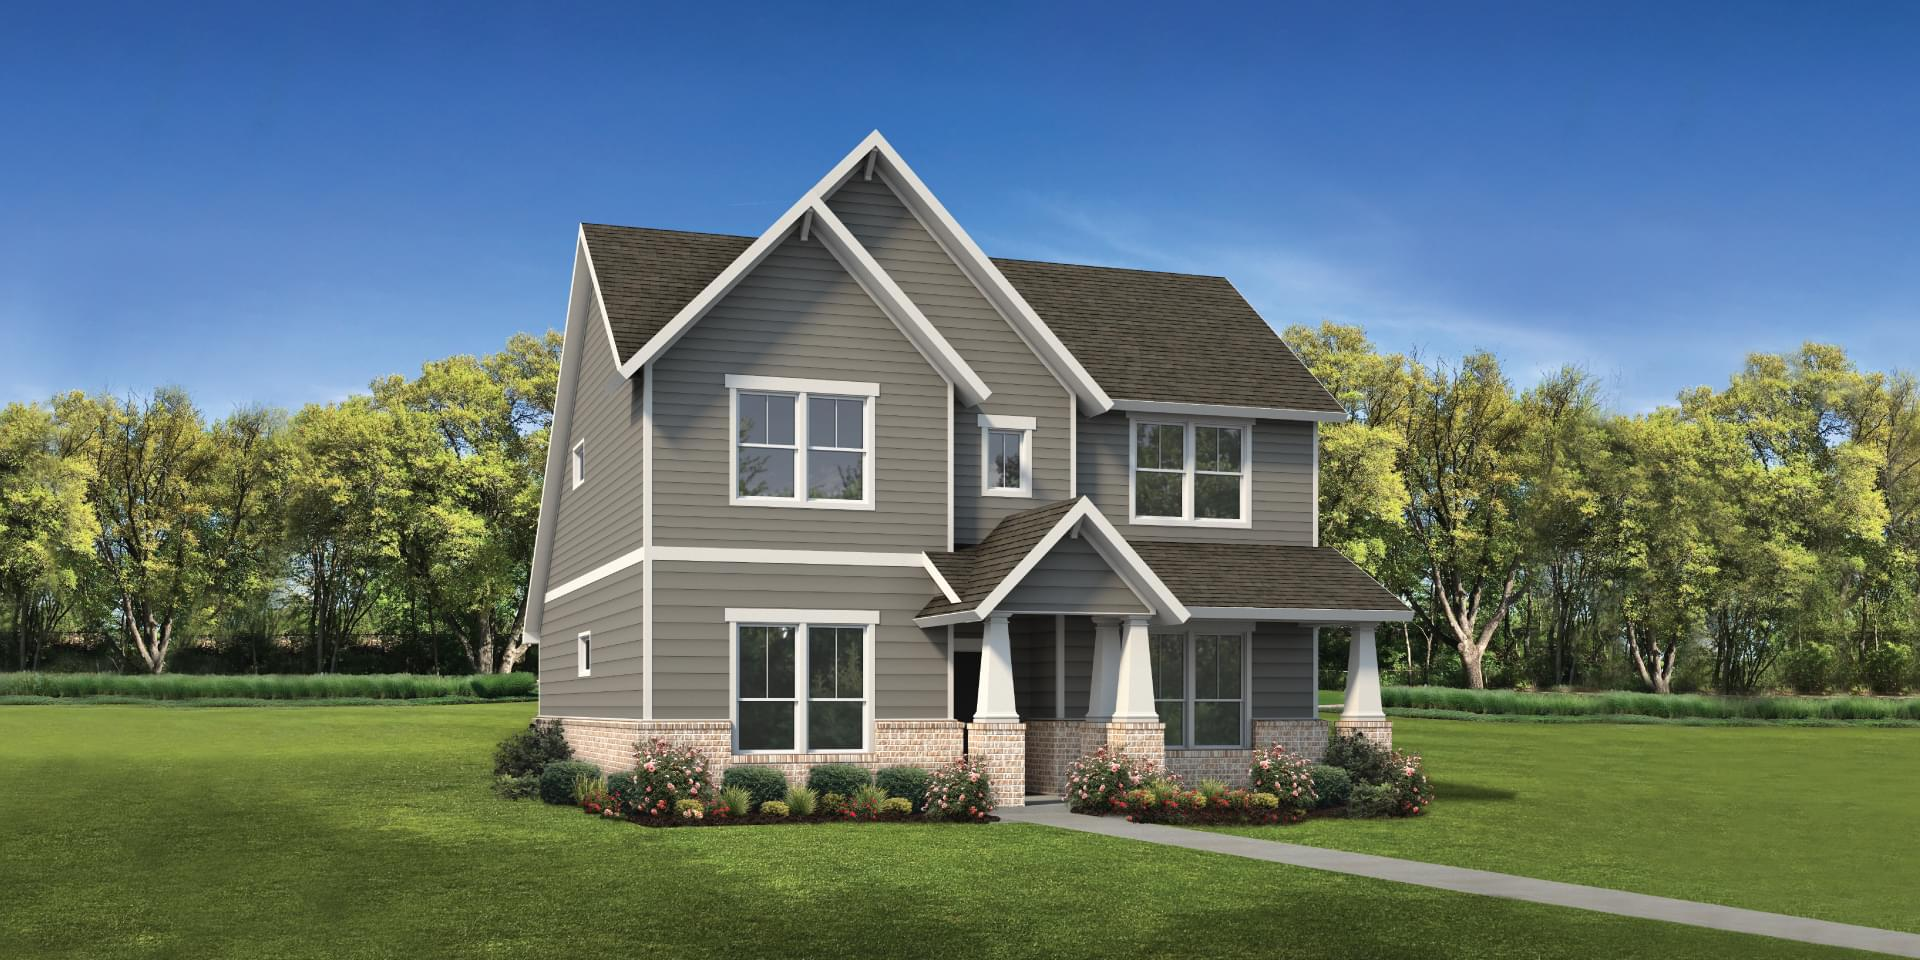 The Goliad Custom Home Plan from Tilson Homes